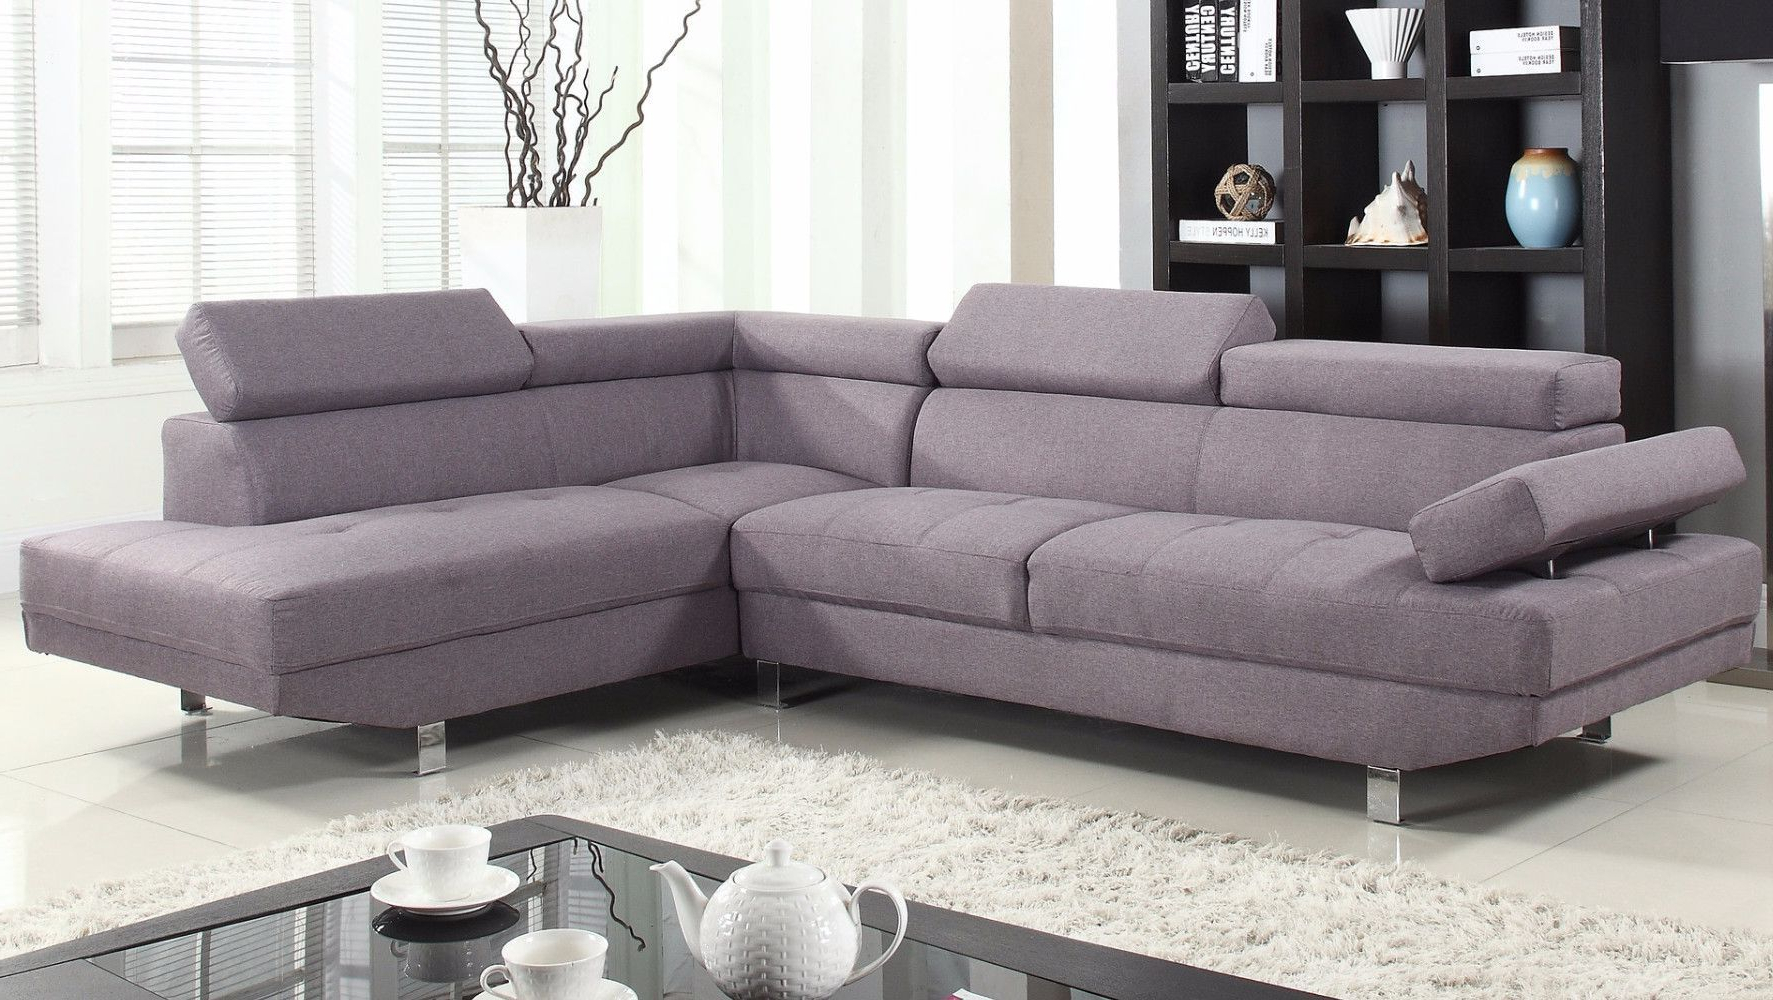 Polyfiber Linen Fabric Sectional Sofas Dark Gray Inside Famous 2 Piece Modern Linen Fabric Right Facing Chaise Sectional (View 6 of 25)